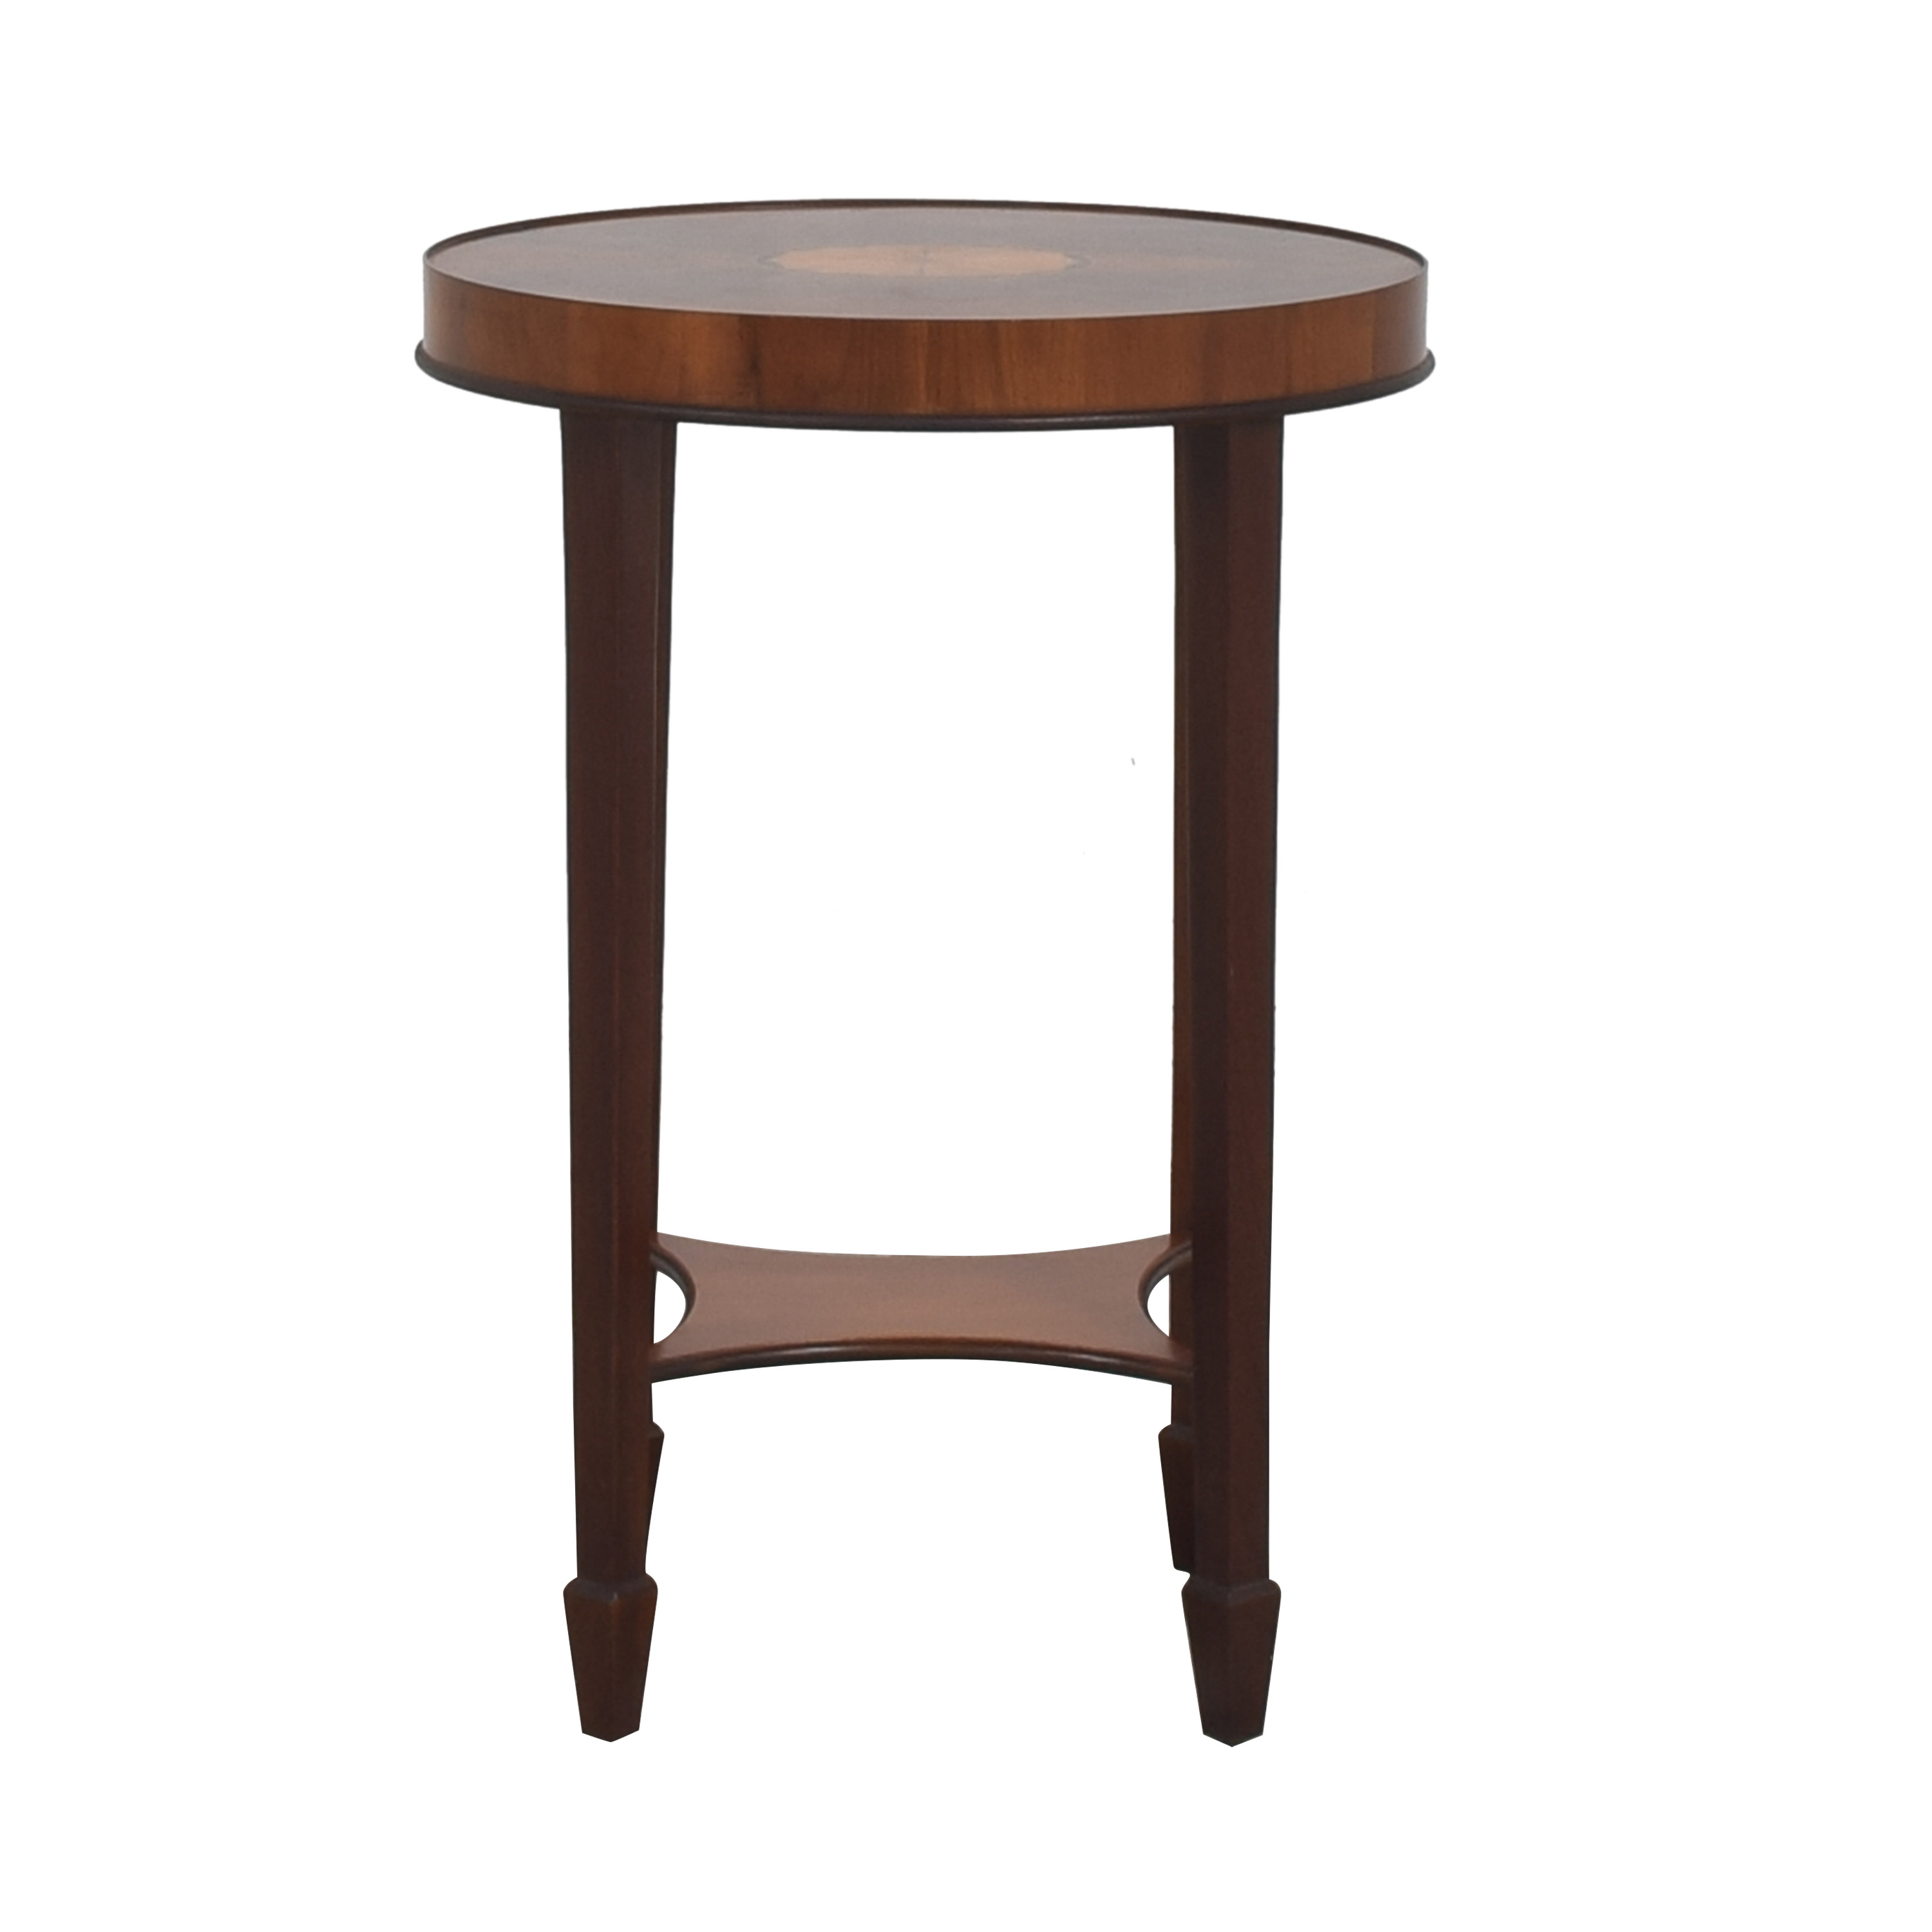 Hekman Copley Place Accent Table sale